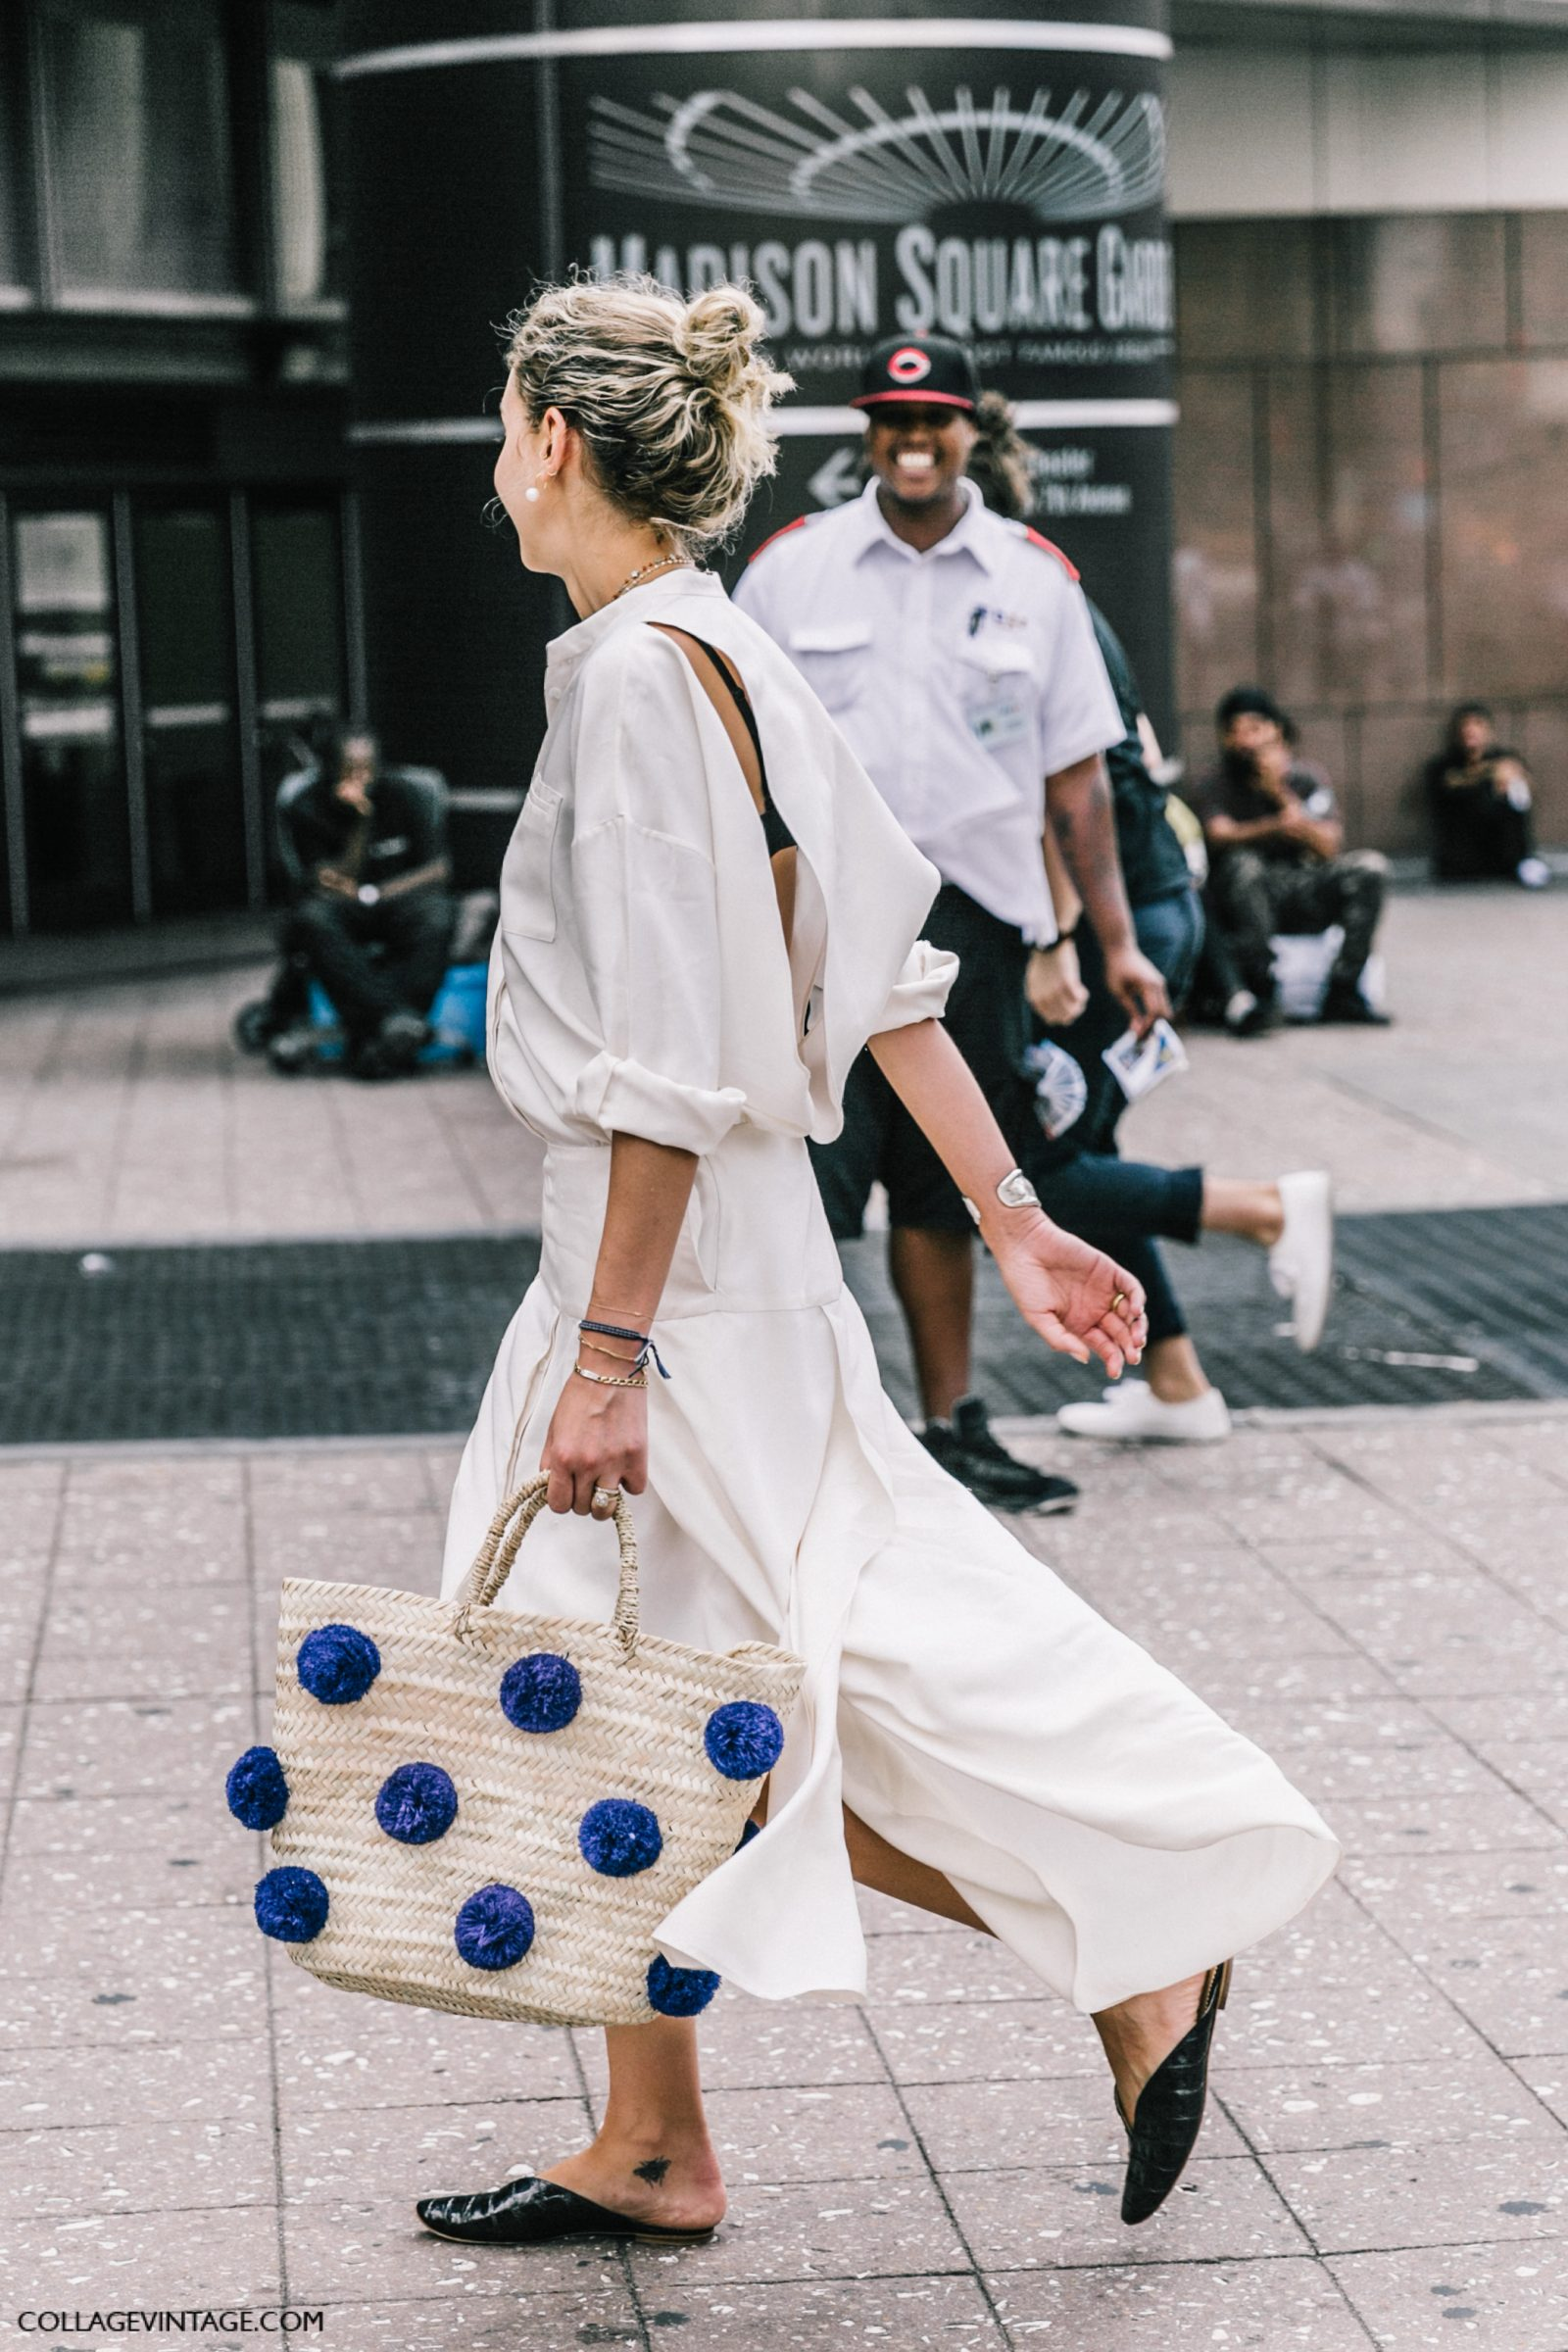 nyfw-new_york_fashion_week_ss17-street_style-outfits-collage_vintage-vintage-tome-122